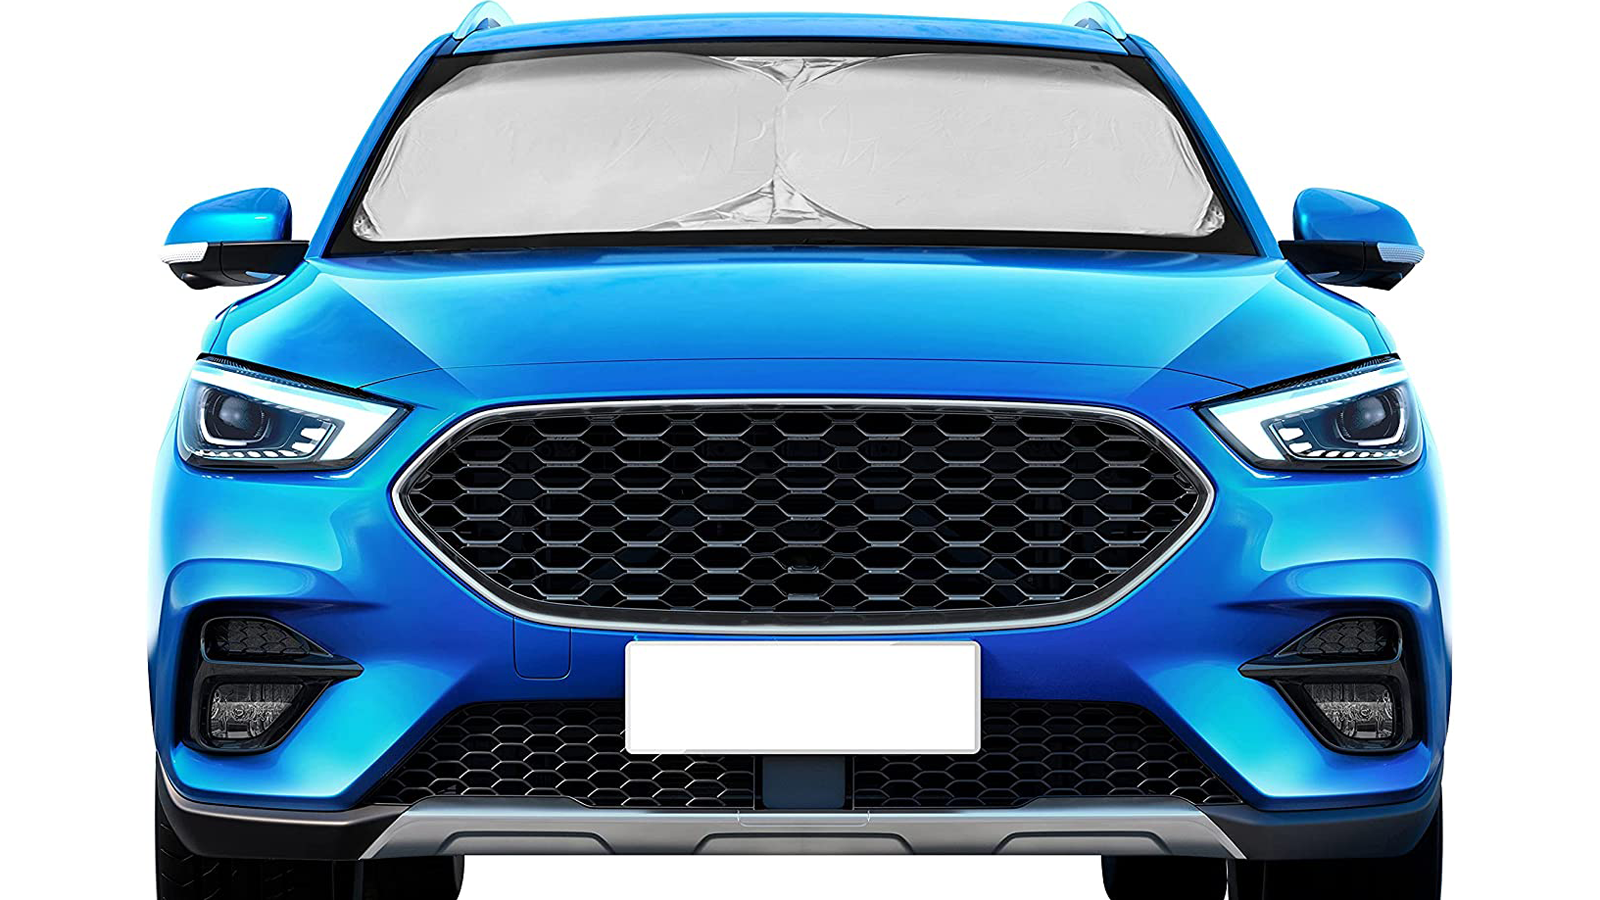 Keep Your Car Cool While Parked with This Windshield Sun Shade